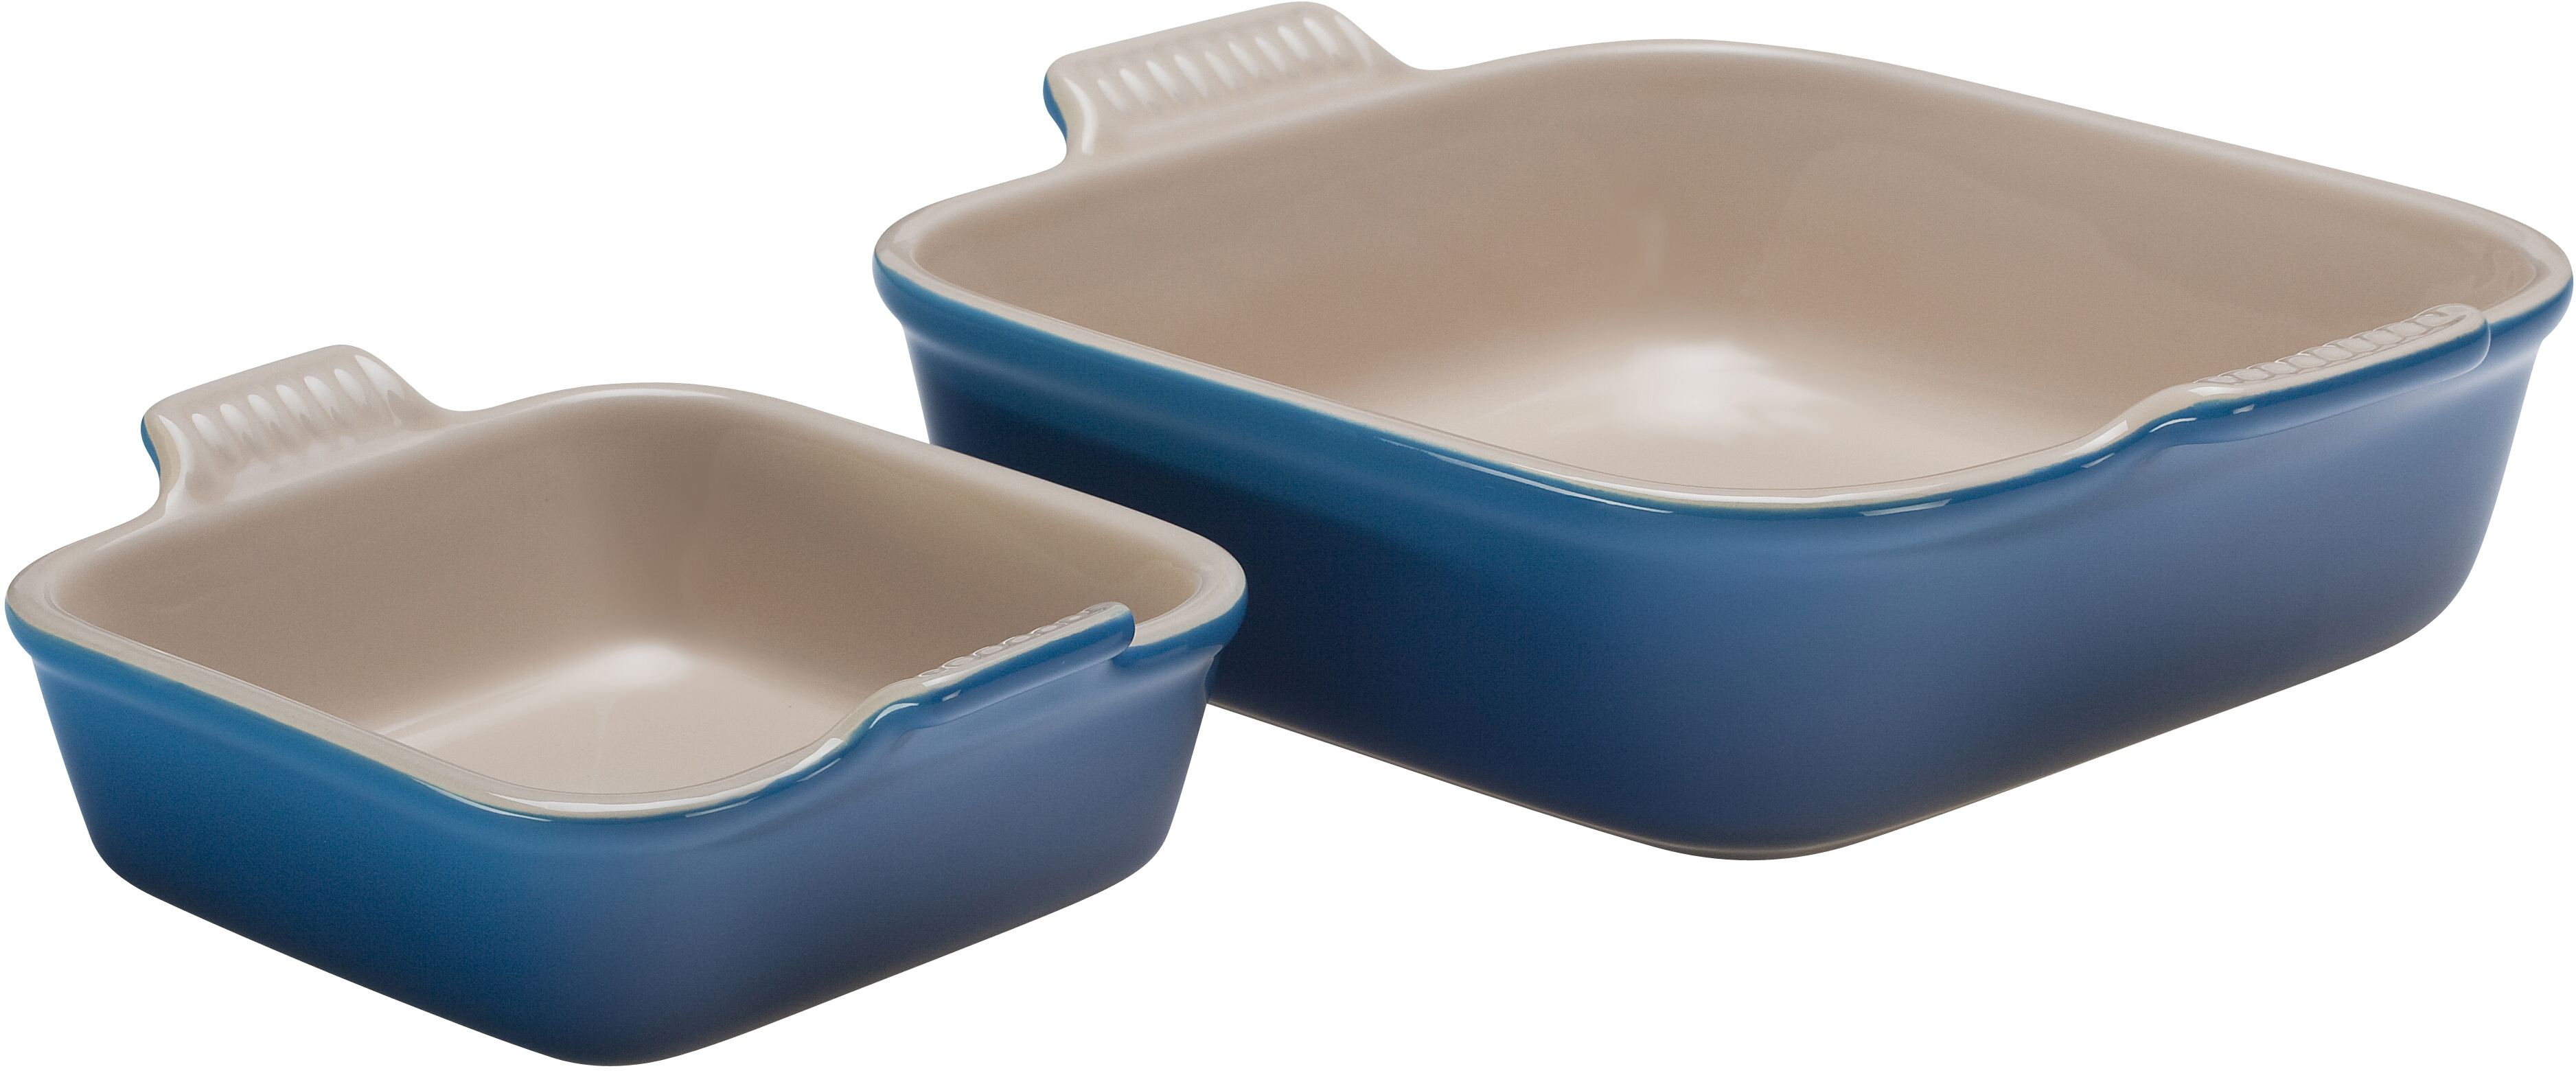 Le Creuset Heritage Marseille Blue Stoneware Square Baker, Set of 2